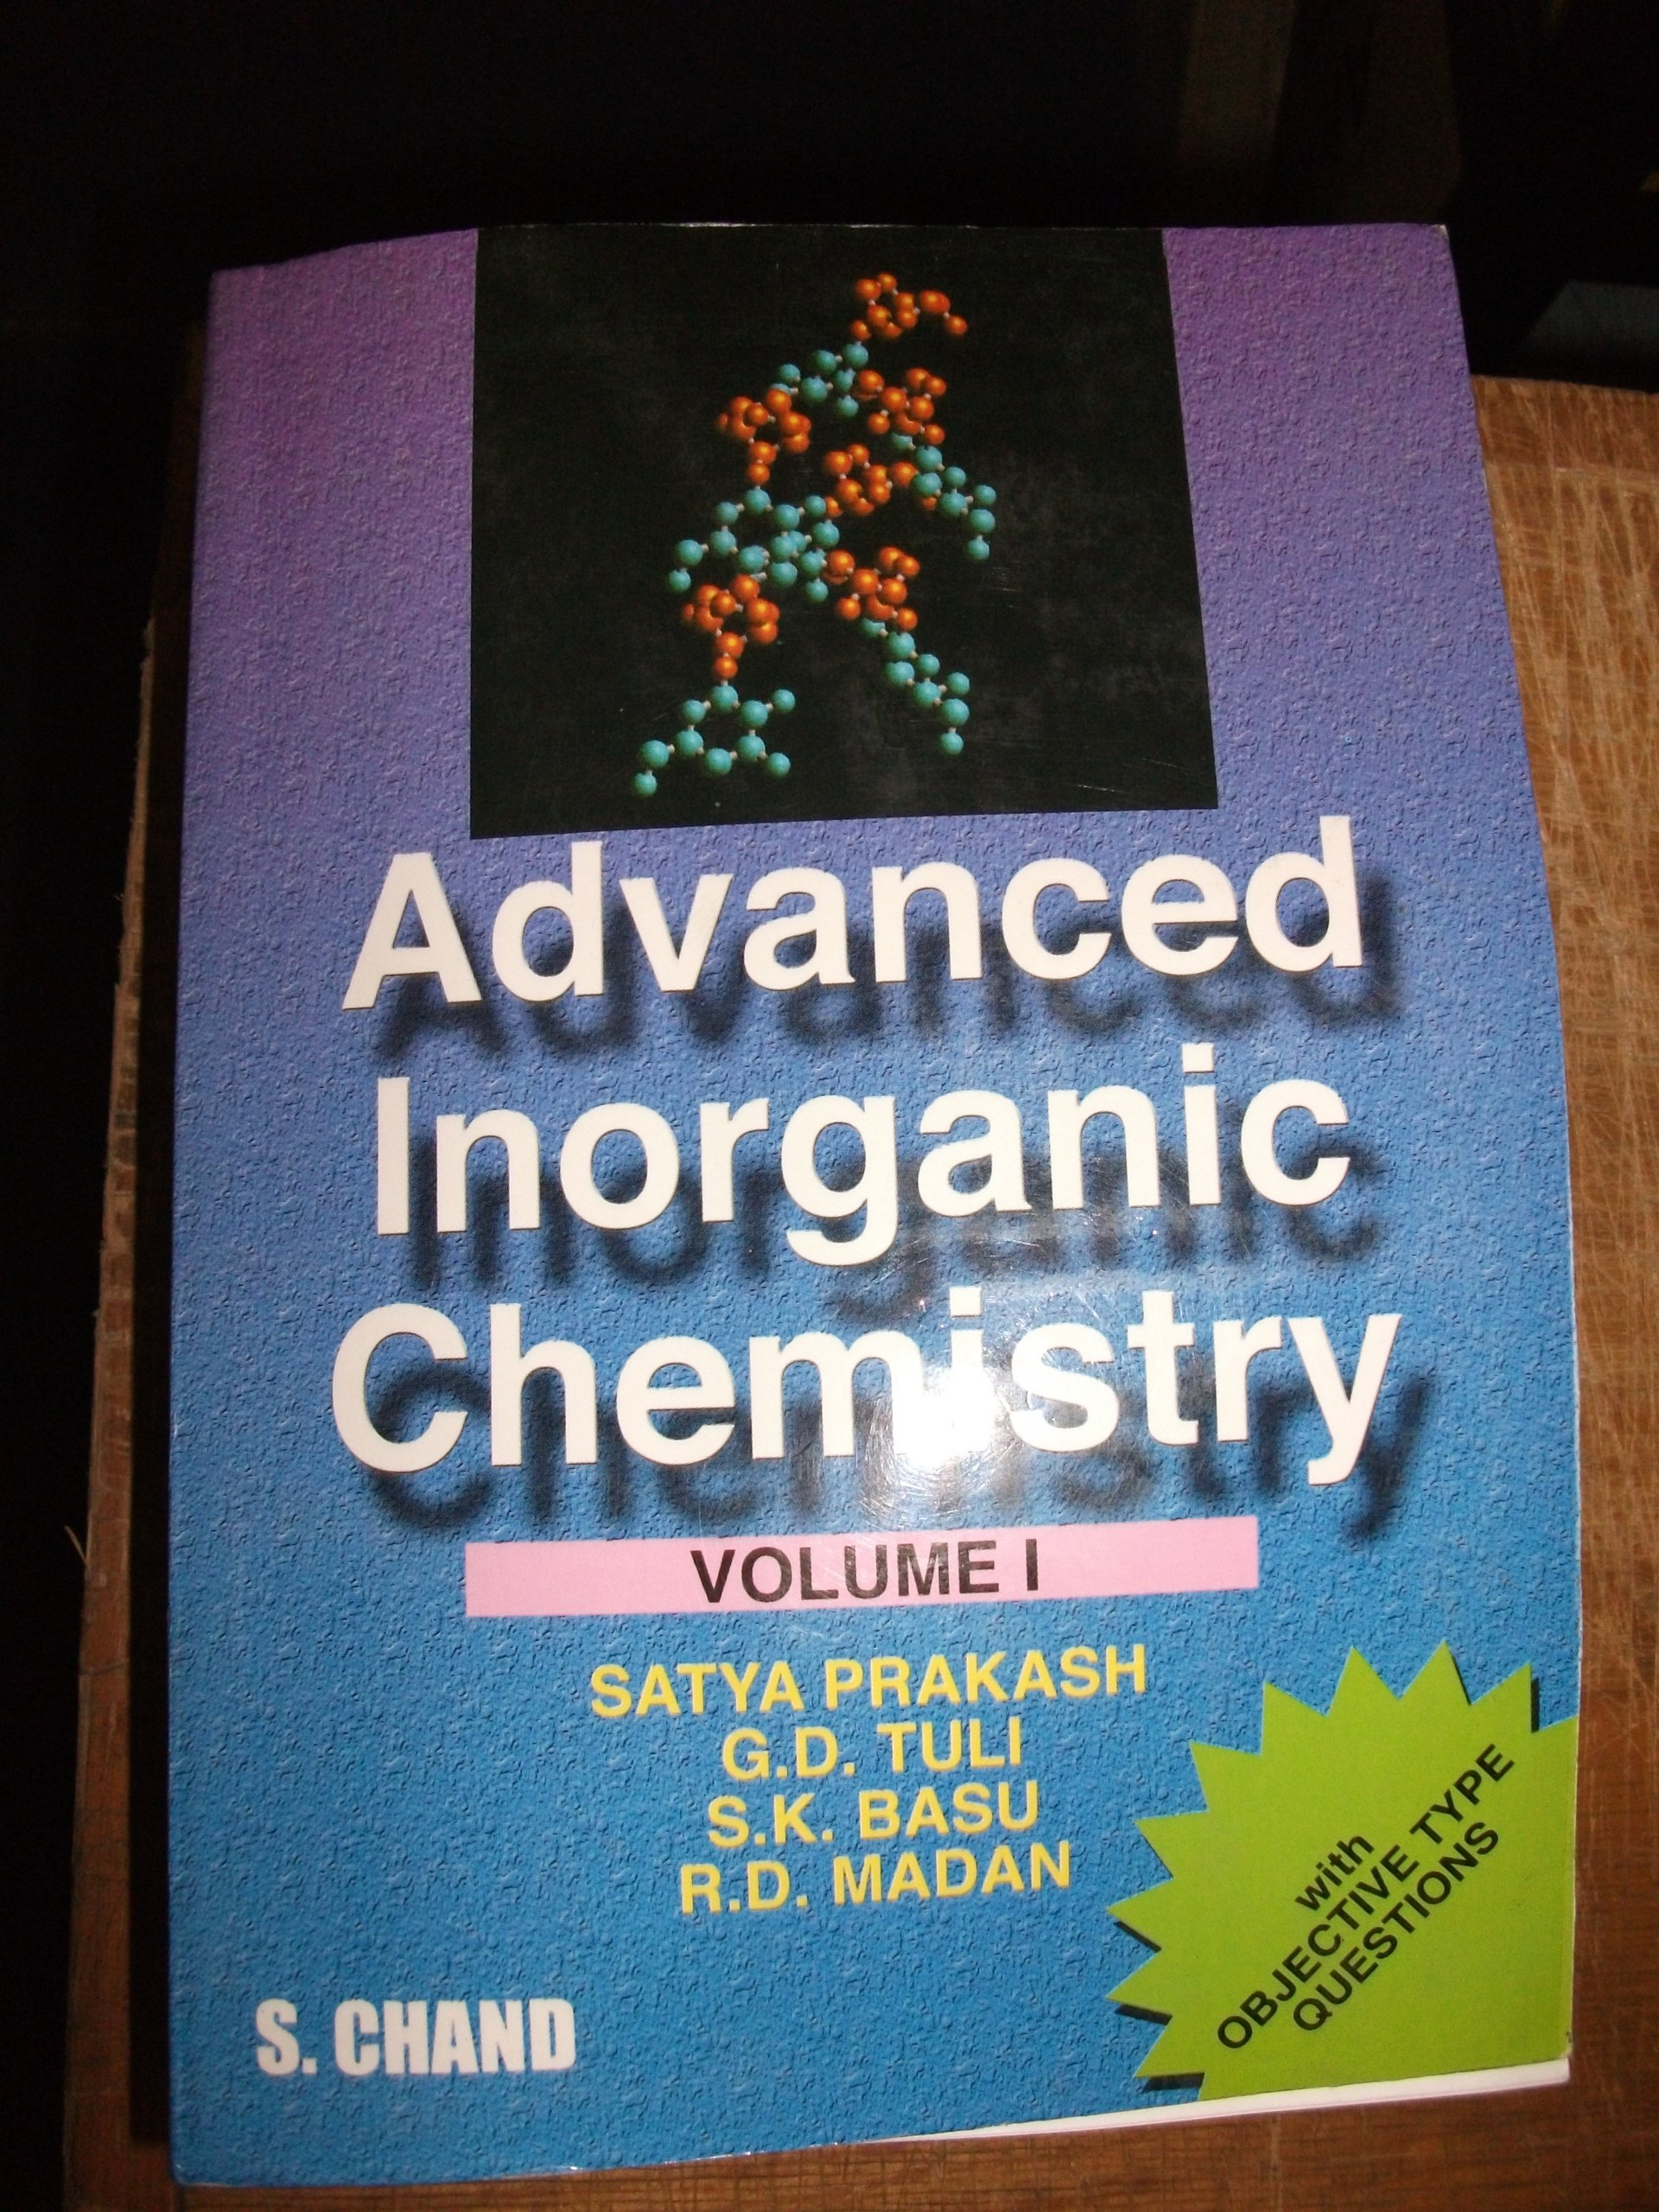 buy advanced inorganic chemistry vol 1 book online at low buy advanced inorganic chemistry vol 1 book online at low prices in advanced inorganic chemistry vol 1 reviews ratings in